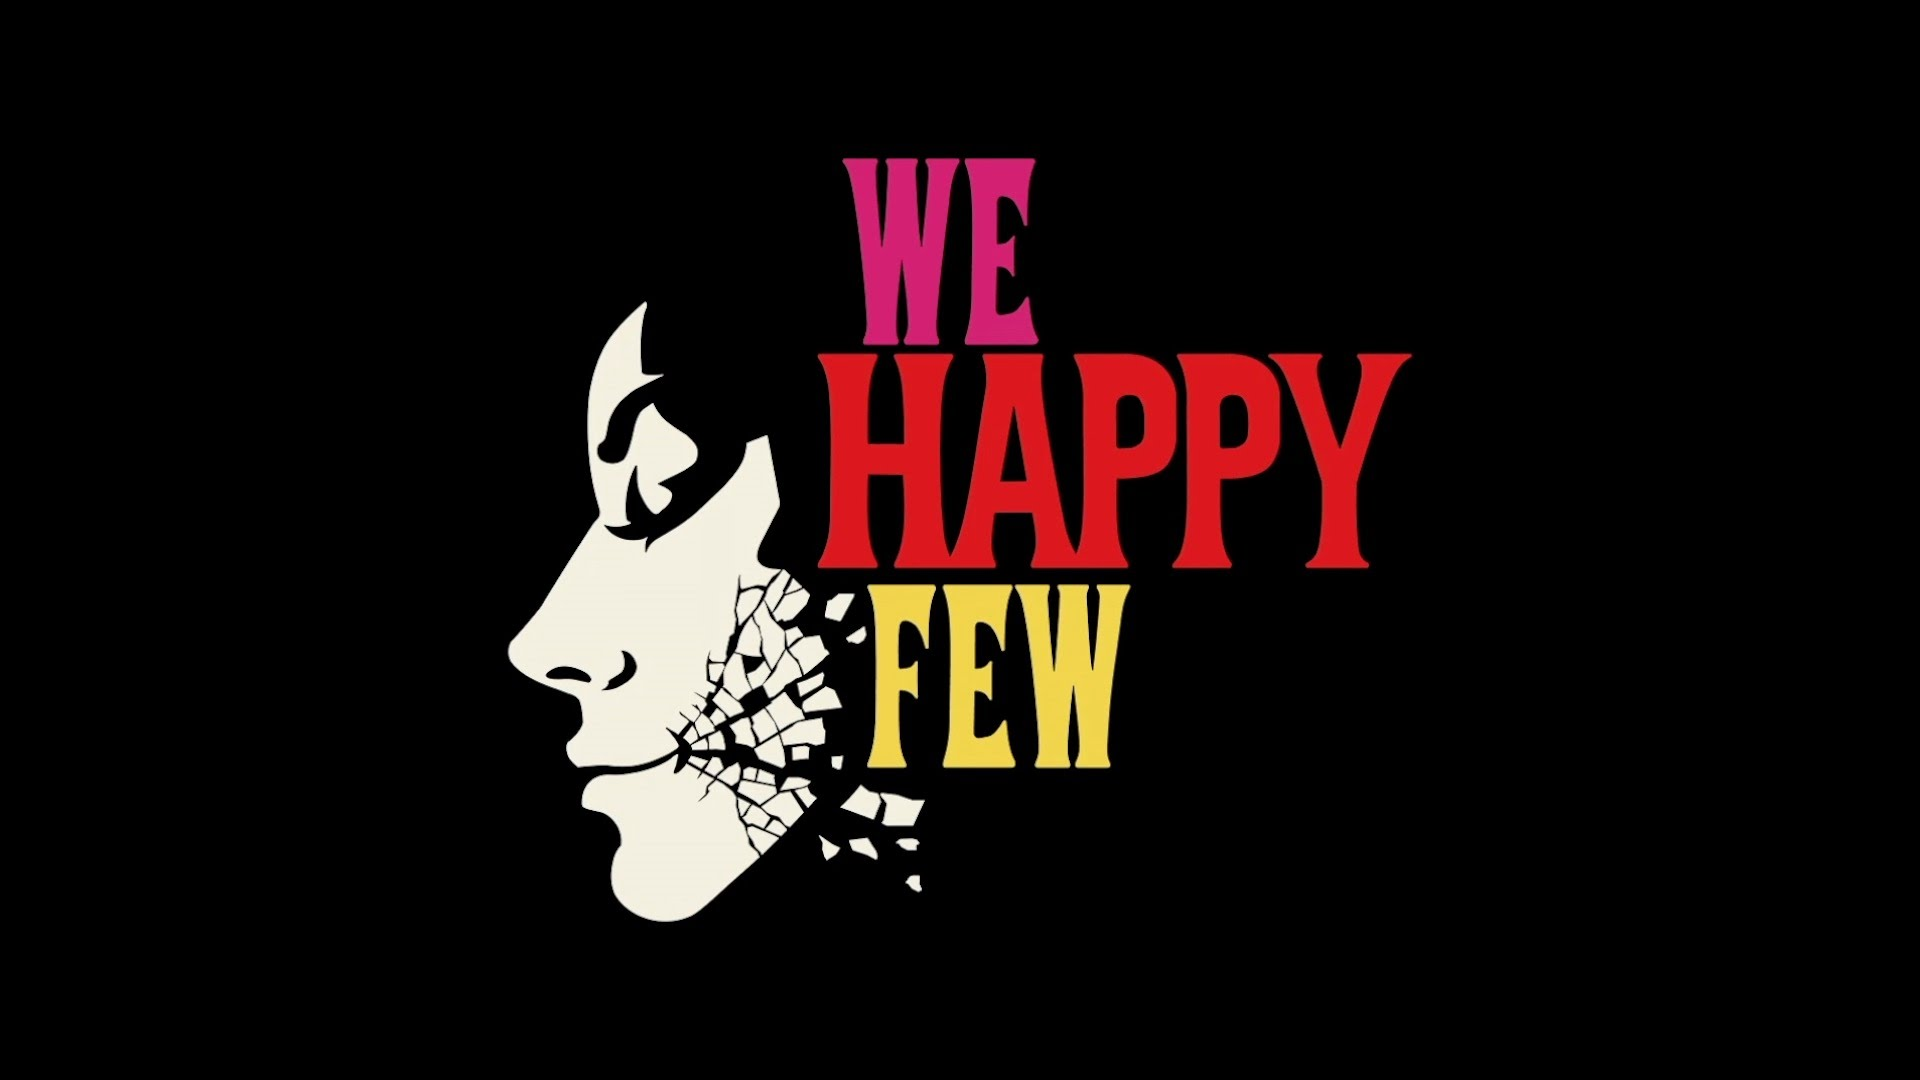 We Happy Few Available On Early Access For Xbox One And PC